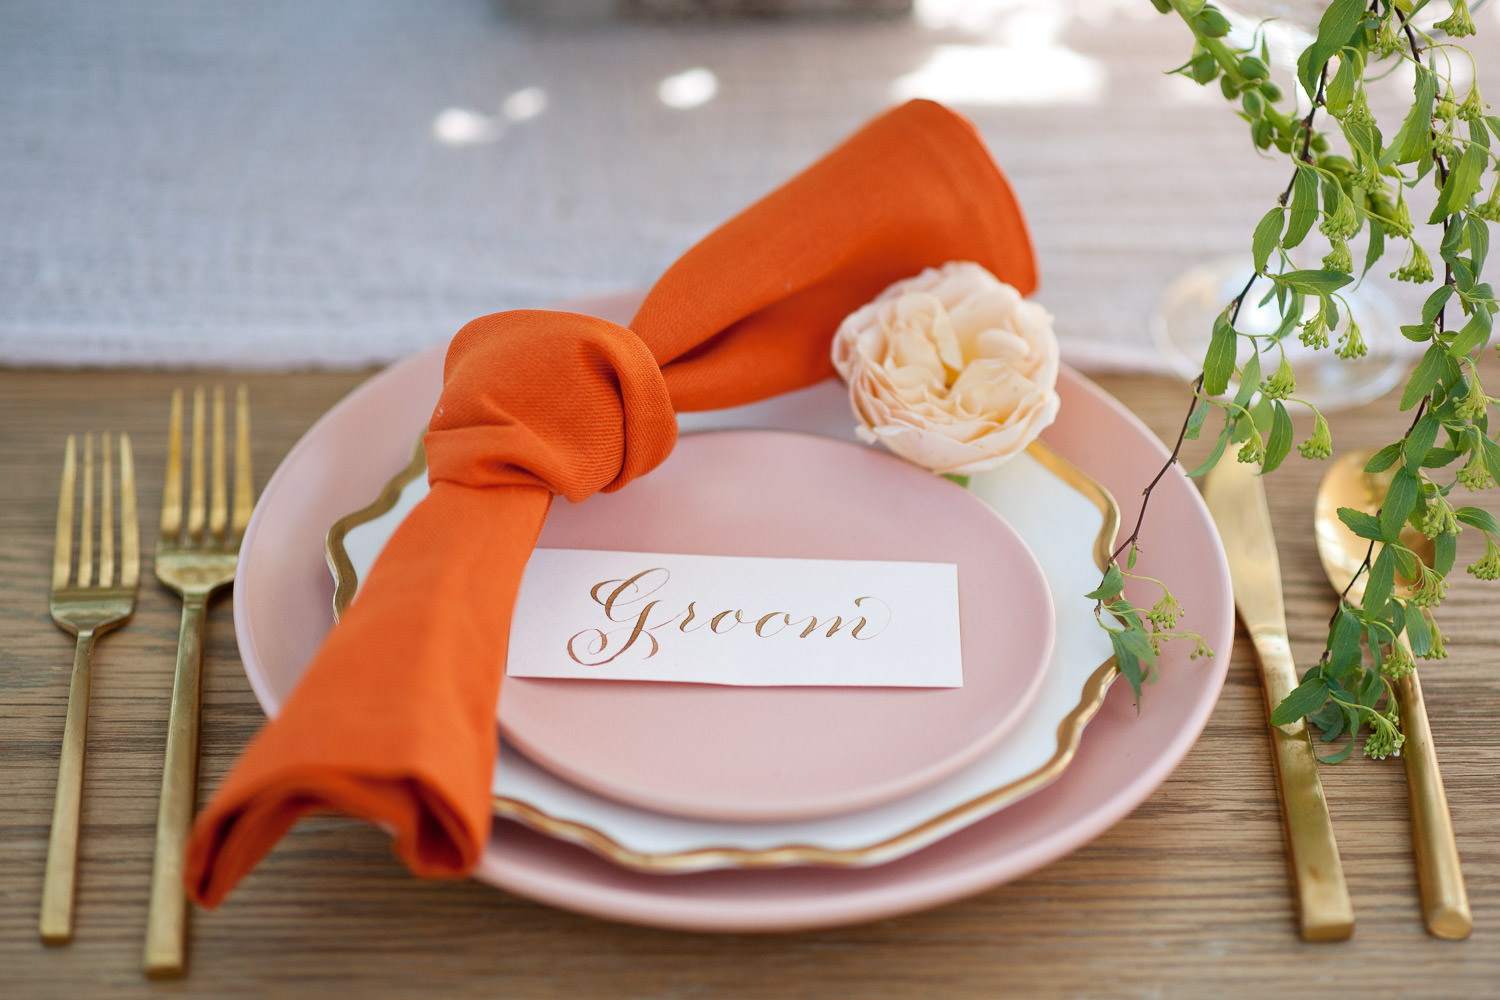 The groom's place setting at a garden wedding captured by Tara Whittaker Photography